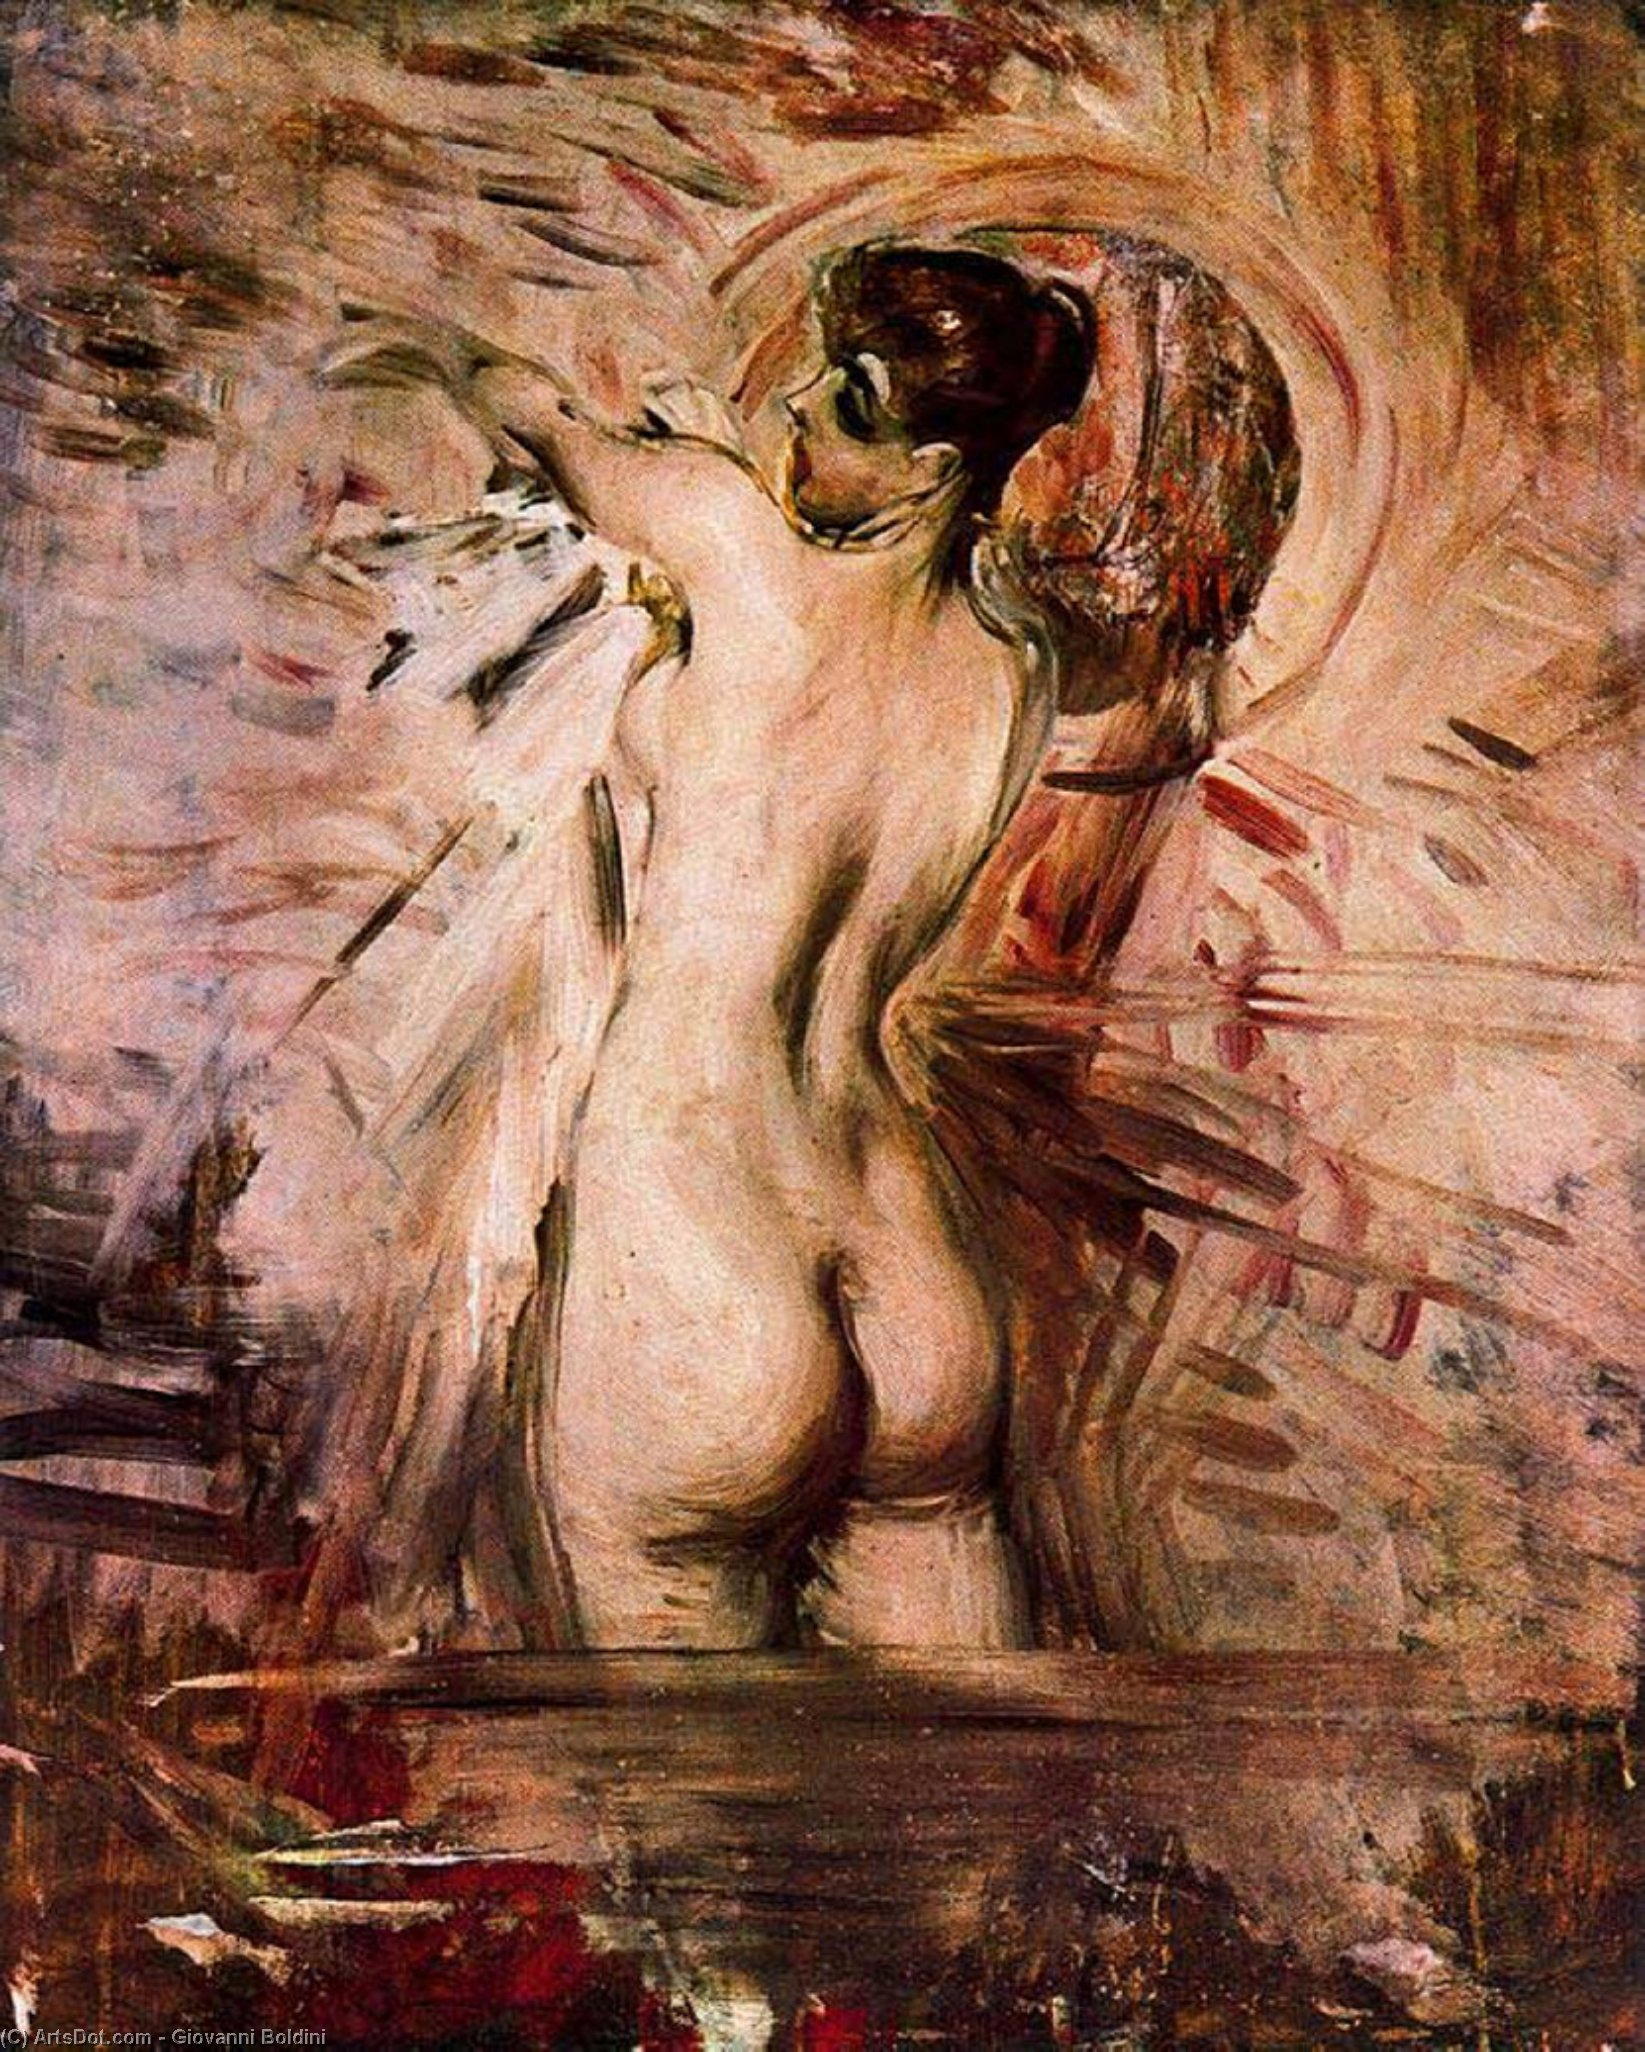 Wikioo.org - The Encyclopedia of Fine Arts - Painting, Artwork by Giovanni Boldini - In the Bath